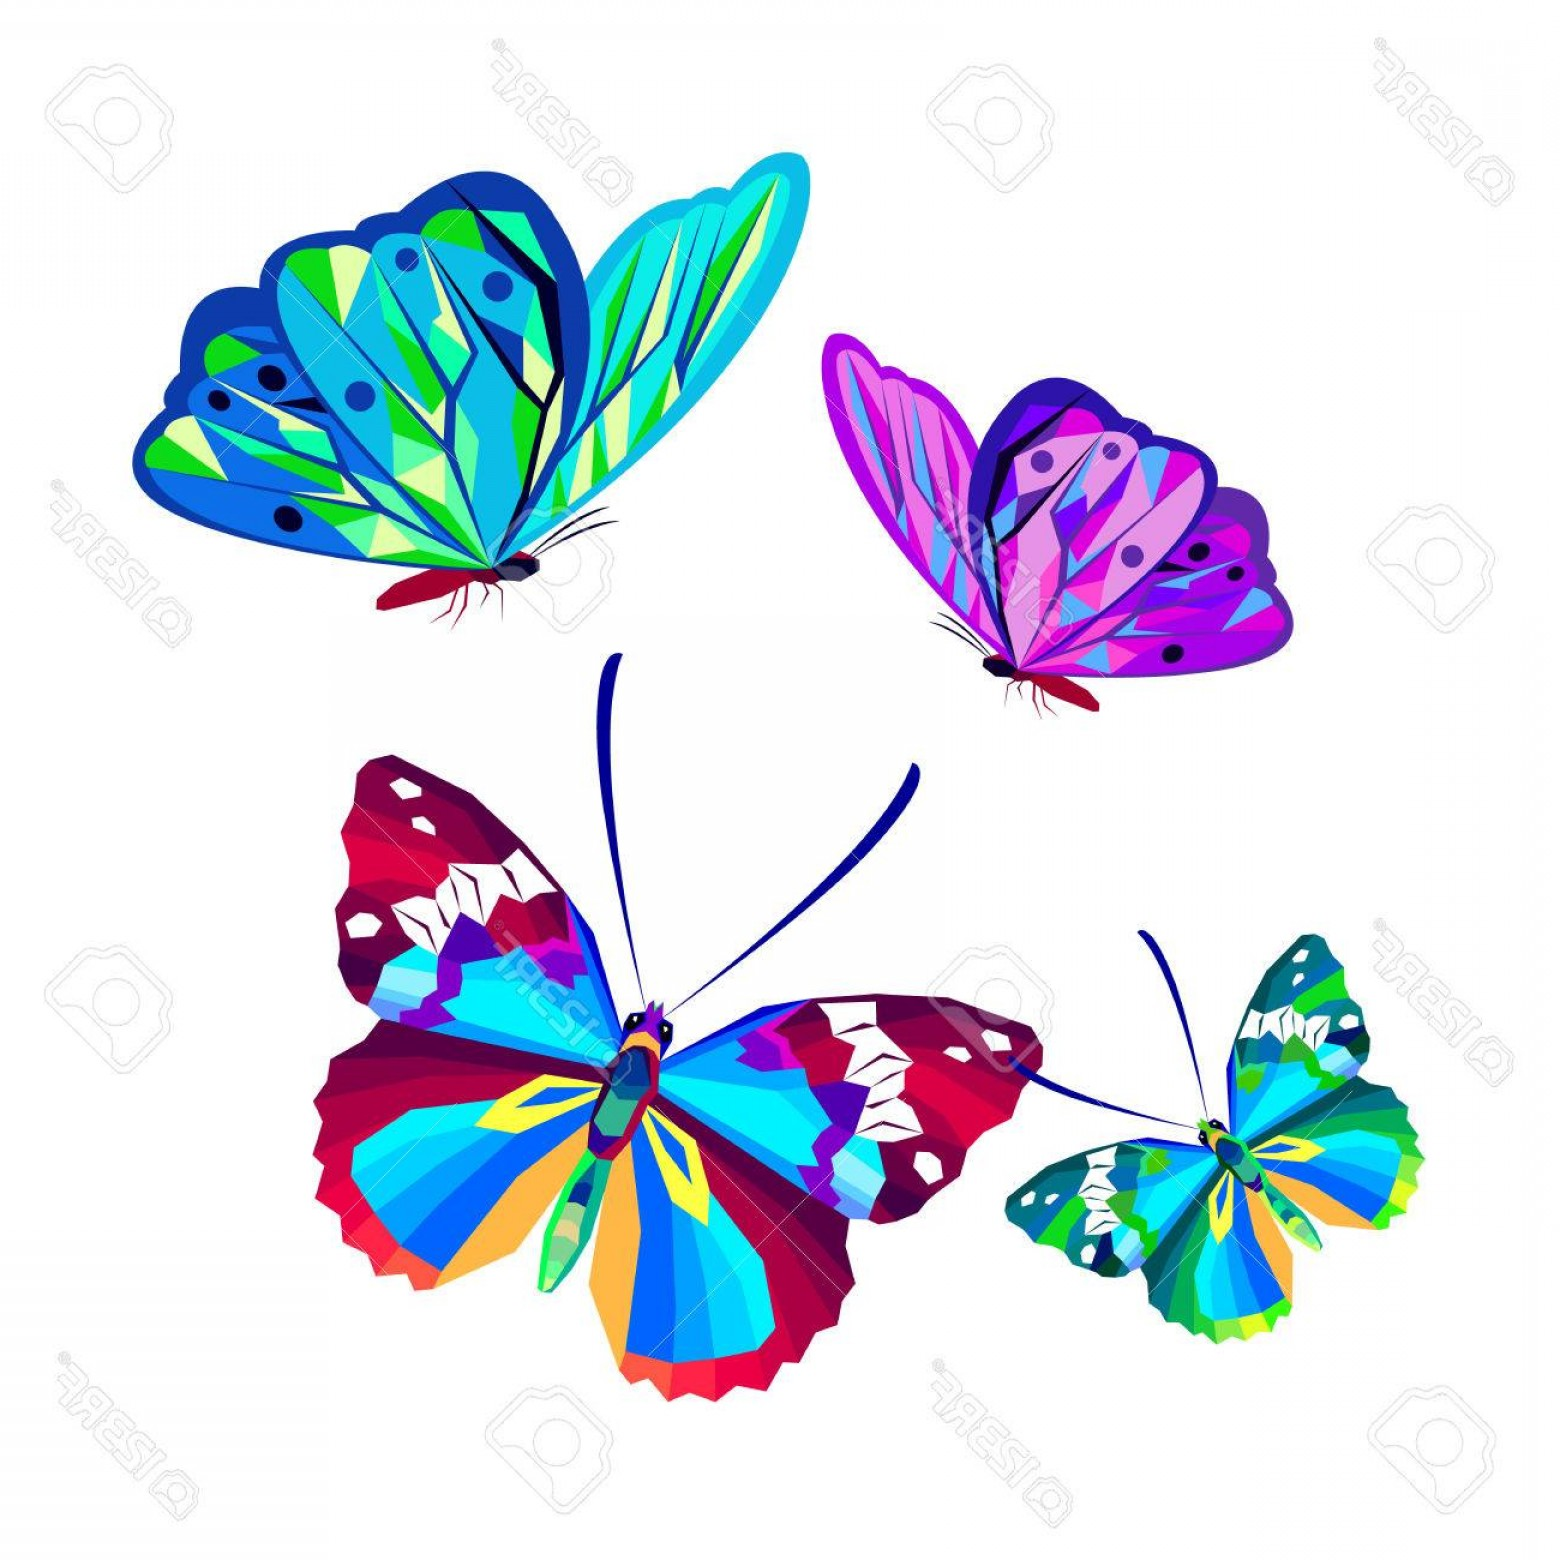 Vector Butterfly Clip Art: Photostock Vector Vector Butterfly Insect Art White Decorative Color